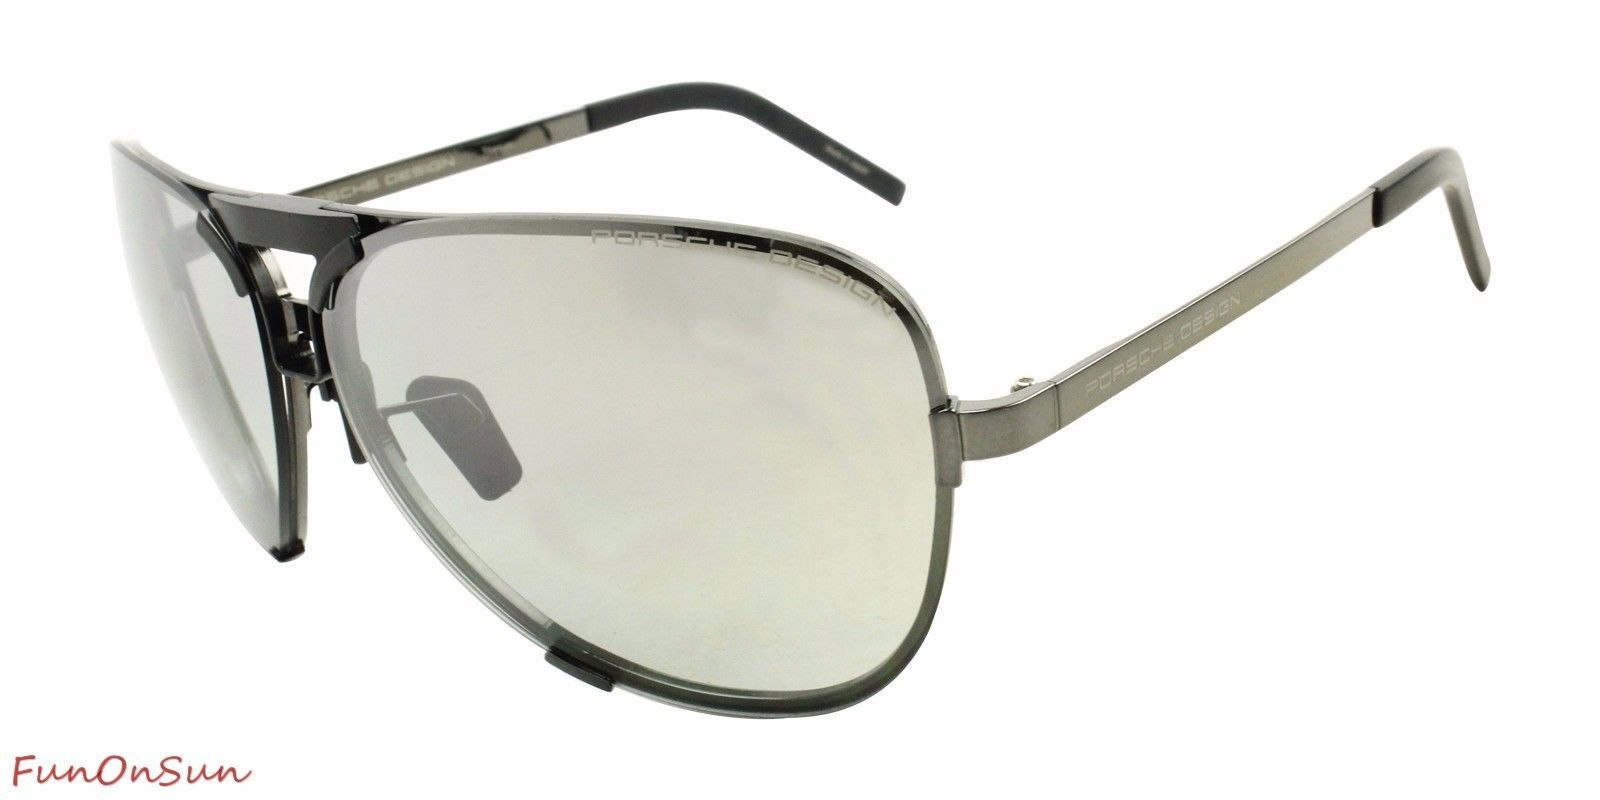 c51838a5f076 Porsche Design Men s Titanium Sunglasses P8678 A Dark Gun With 2 Set of  Lenses